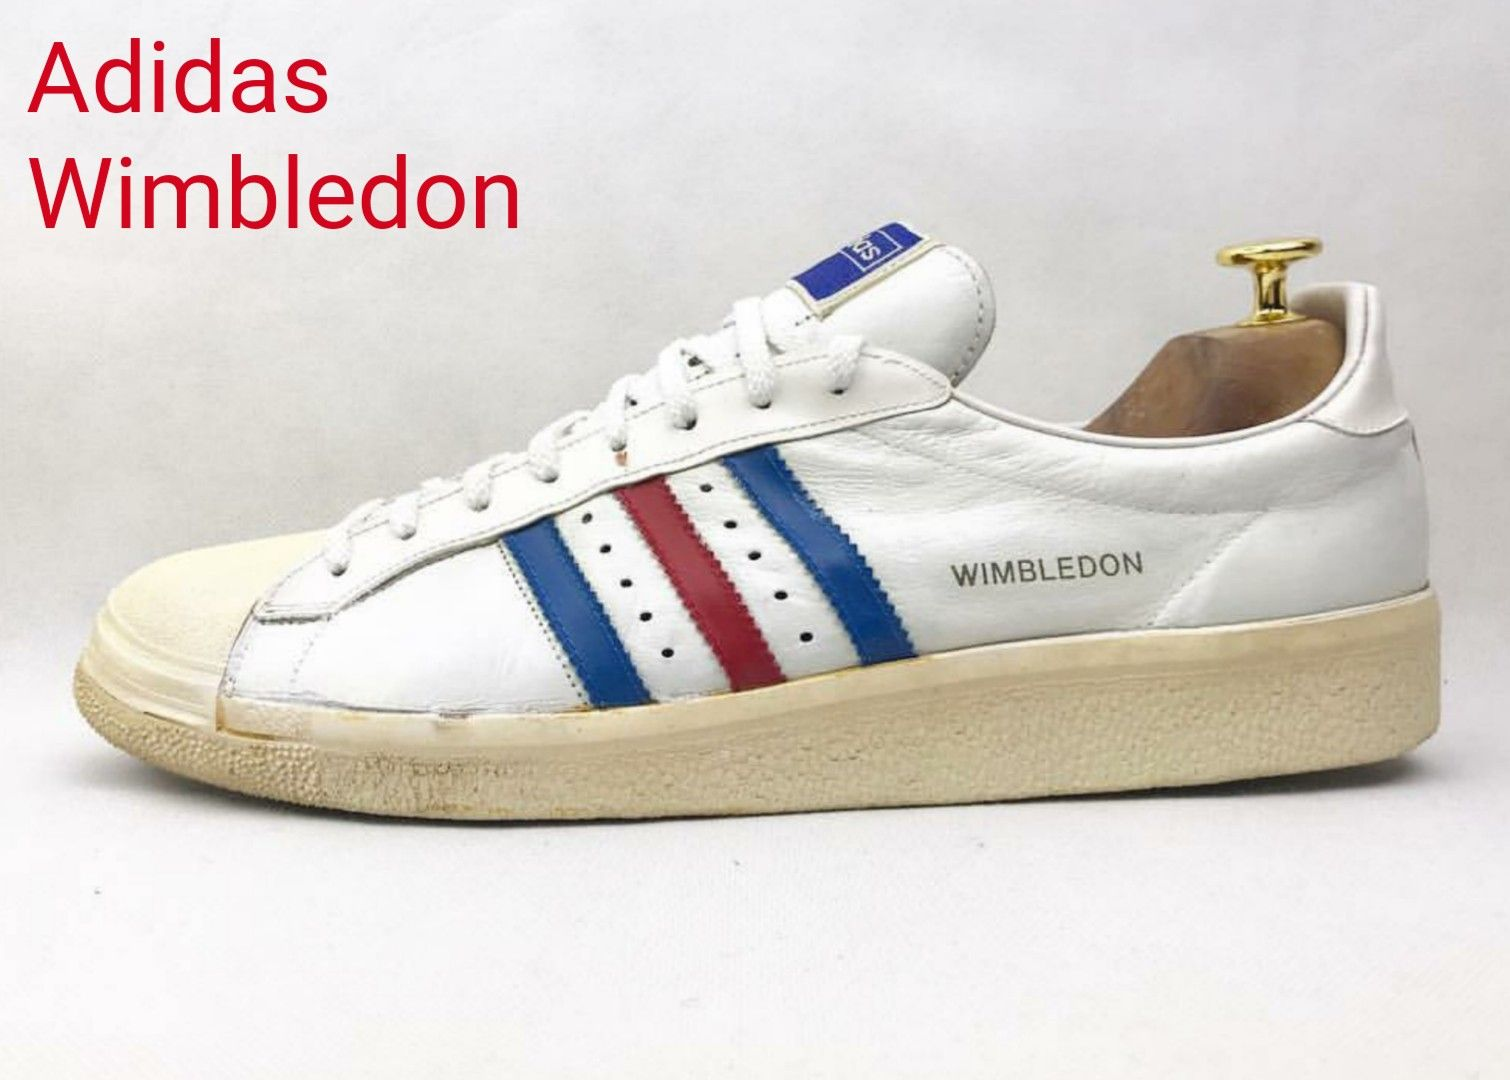 Pedir prestado Compasión literalmente  Vintage Adidas Wimbledon - these bring back memories, I had a pair back in  the day... | Adidas classic shoes, Adidas shoes originals, Vintage adidas